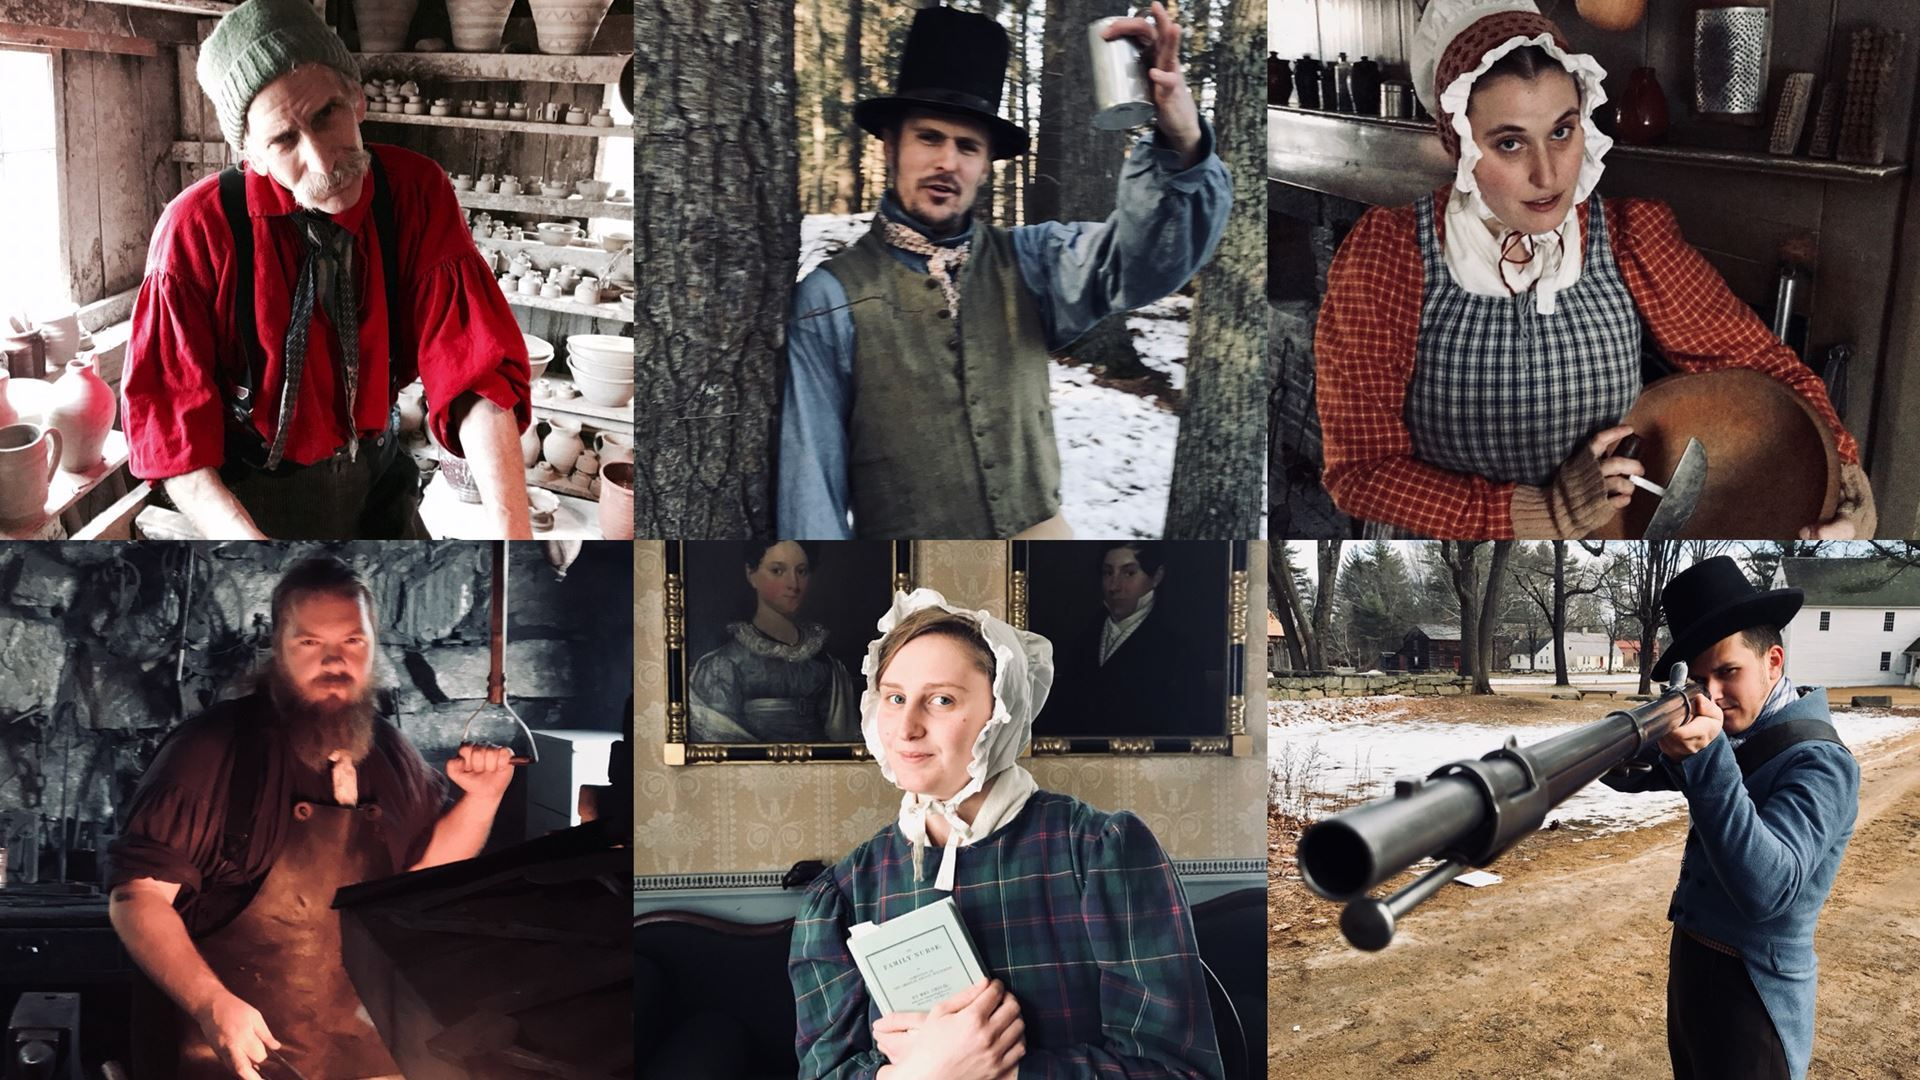 The Potter, the Peddler, the Farmer's Daughter, the Blacksmith, the Printer's Daughter, and the Hunter bring Old Surbridge Village to life in Midwinter Mischief.